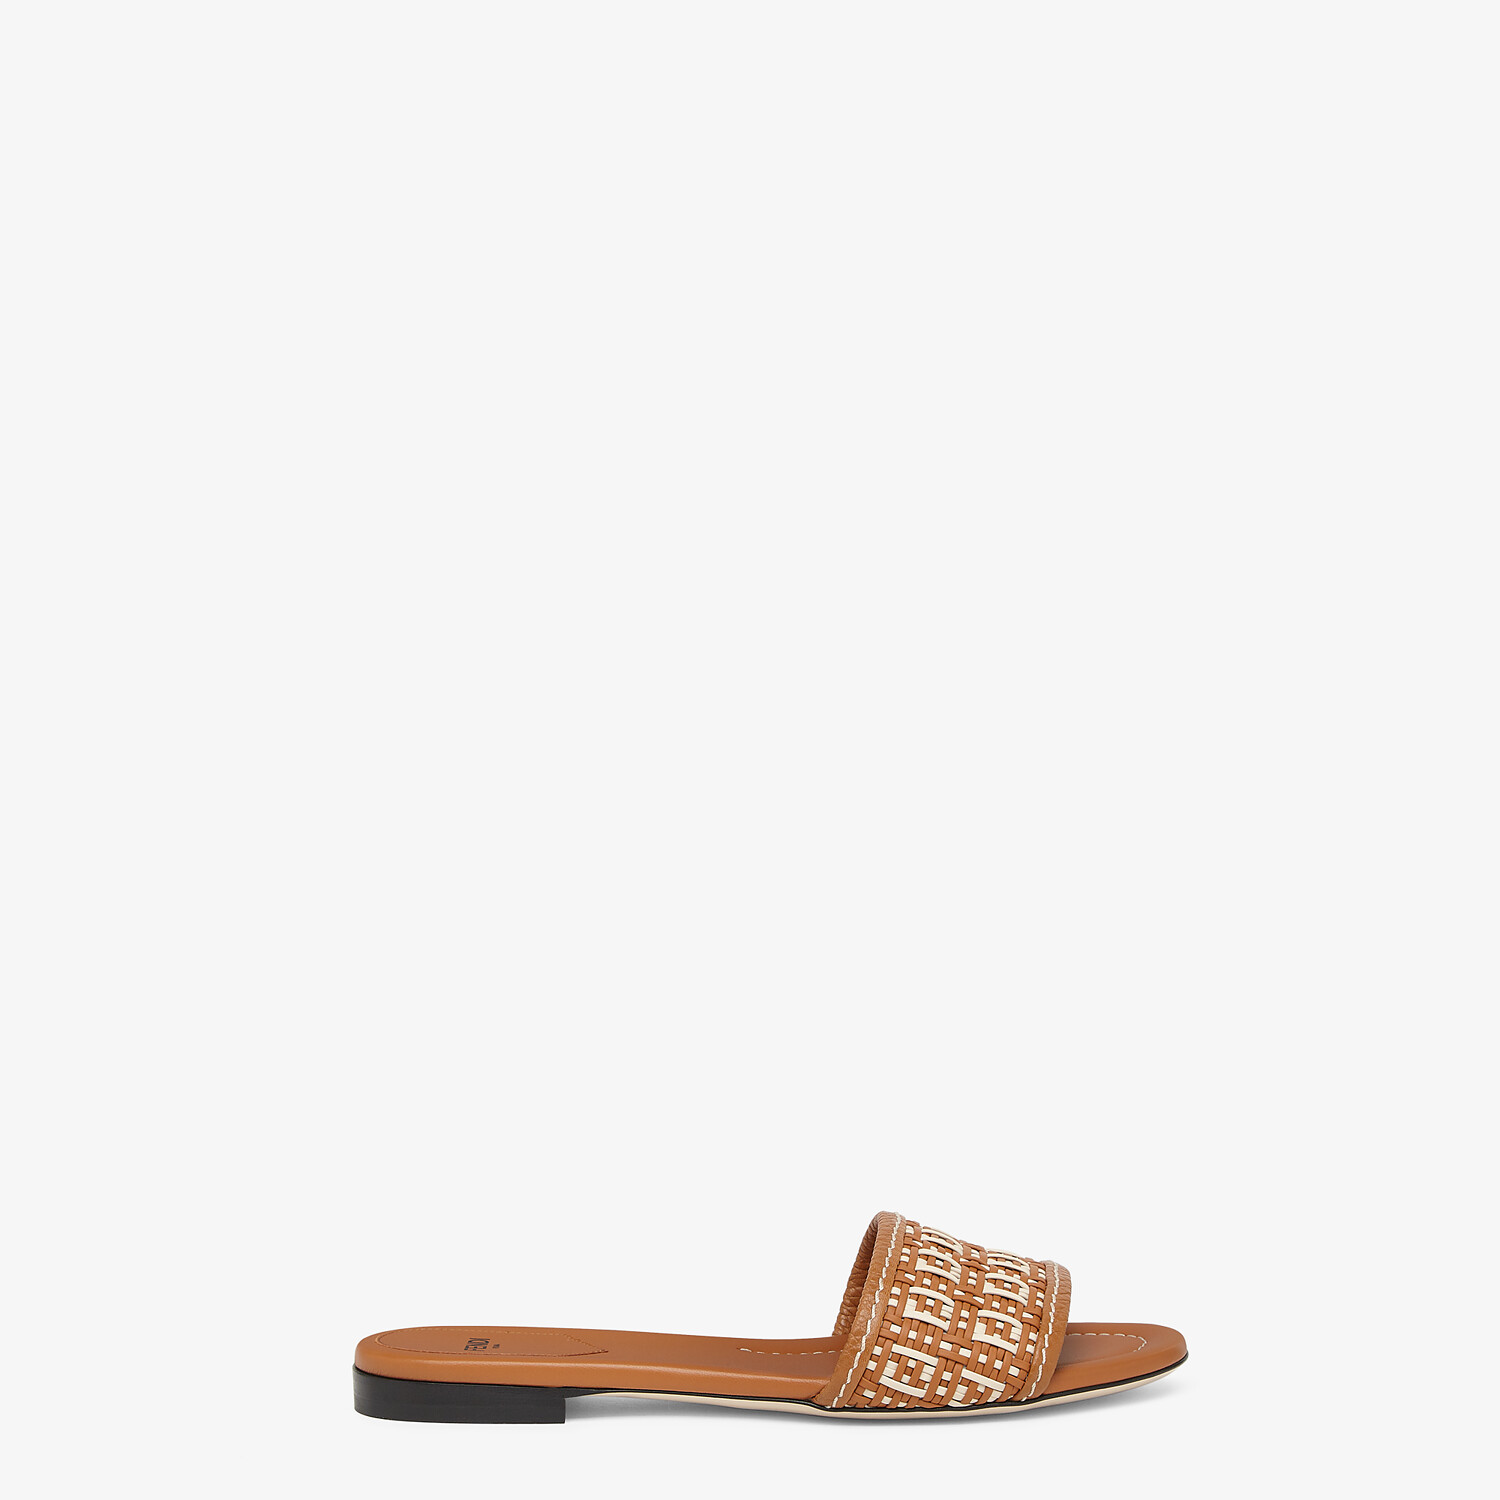 FENDI FF INTERLACE SLIDES - Brown leather slides - view 1 detail